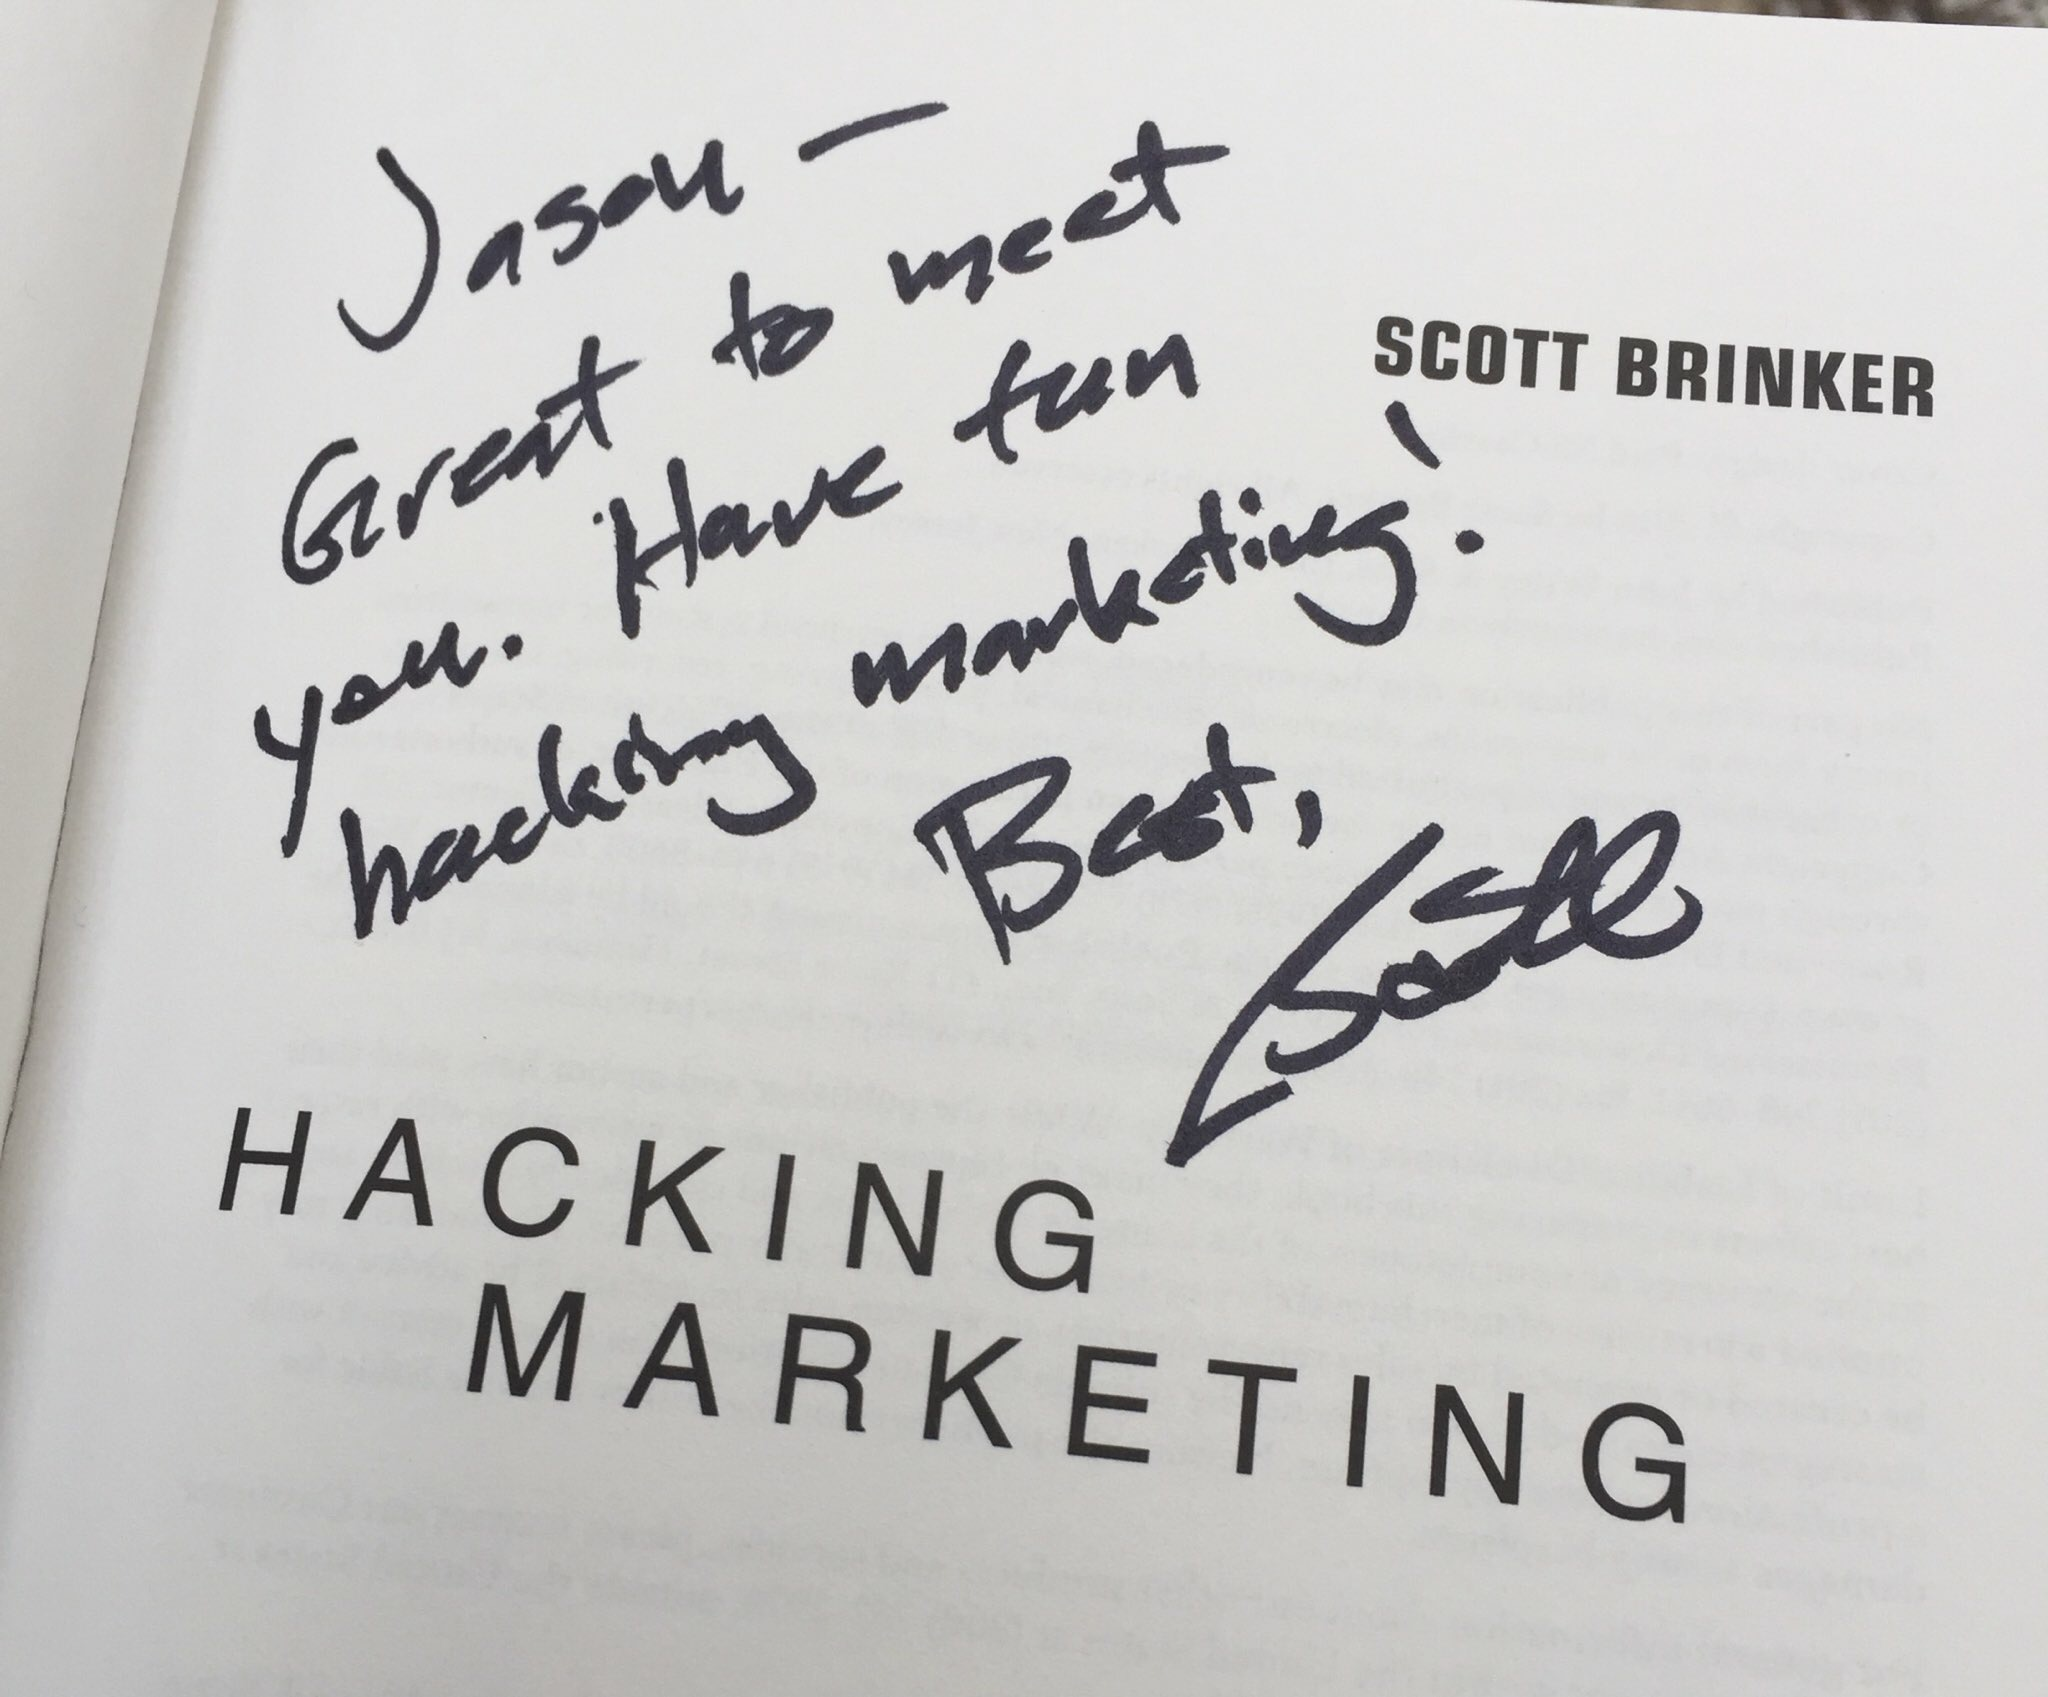 Signed book from one of my marketing technology sources of inspiration: Scott Brinker.